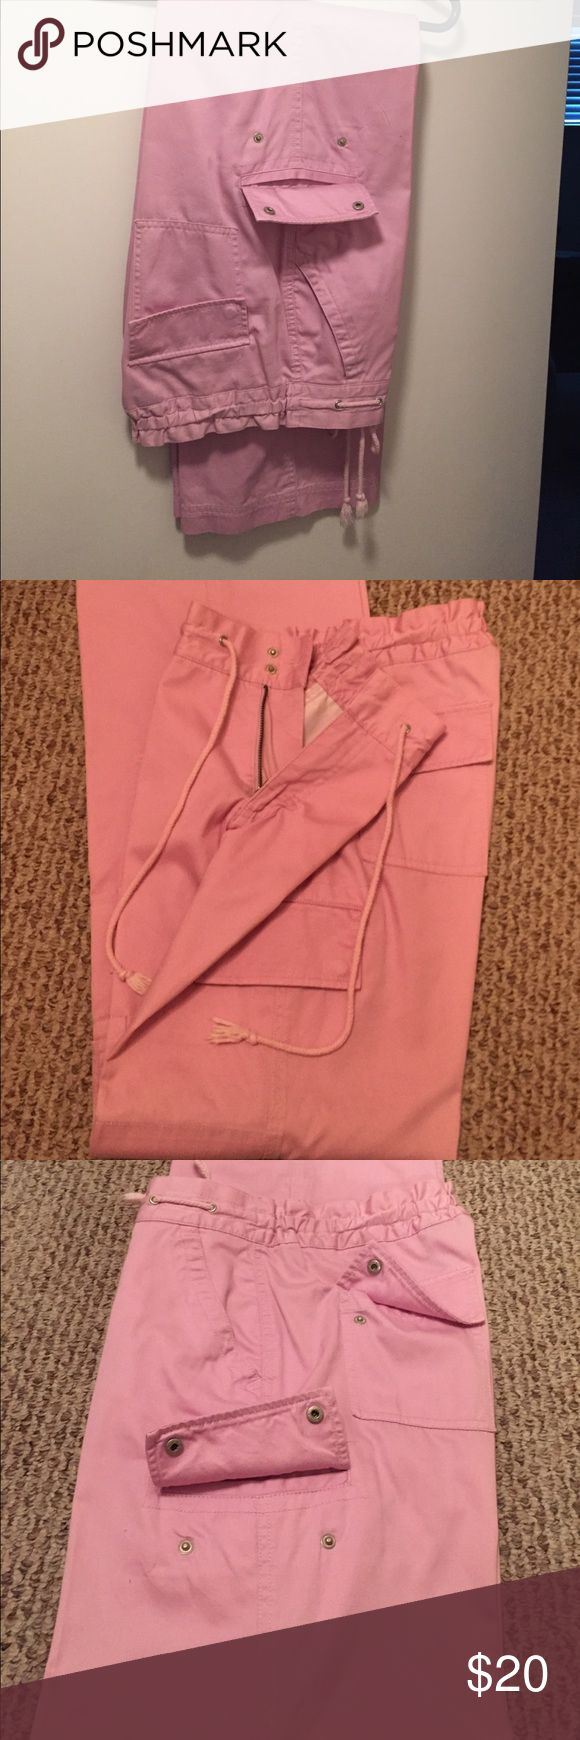 """THE """"CARMEN FIT"""" LADIES CARGO PANTS 🔥🔥🔥. BUNDLE WITH RALPH LAUREN LAVENDER SHOES AND GET BOTH FOR $40.00. 🔥🔥THE """"CARMEN FIT"""" LADIES CARGO PANTS WITH STRETCHABLE WAIST WITH ZIPPER FRONT AND SNAP CLOSURE WITH TIE.  PANTS HAVE SIDE POCKETS WITH 3 SNAP POCKETS ON EACH LEG AND ONE SNAP POCKET ON EACH SIDE IN BACK. LIGHT LAVENDER. SZ 4.....IF BOUGHT WITH RALPH LAUREN SHOES IN SAME COLOR....PRICE IS $40 FOR BOTH!!!🔥🔥🔥🔥 THE CARMEN FIT Pants Trousers"""